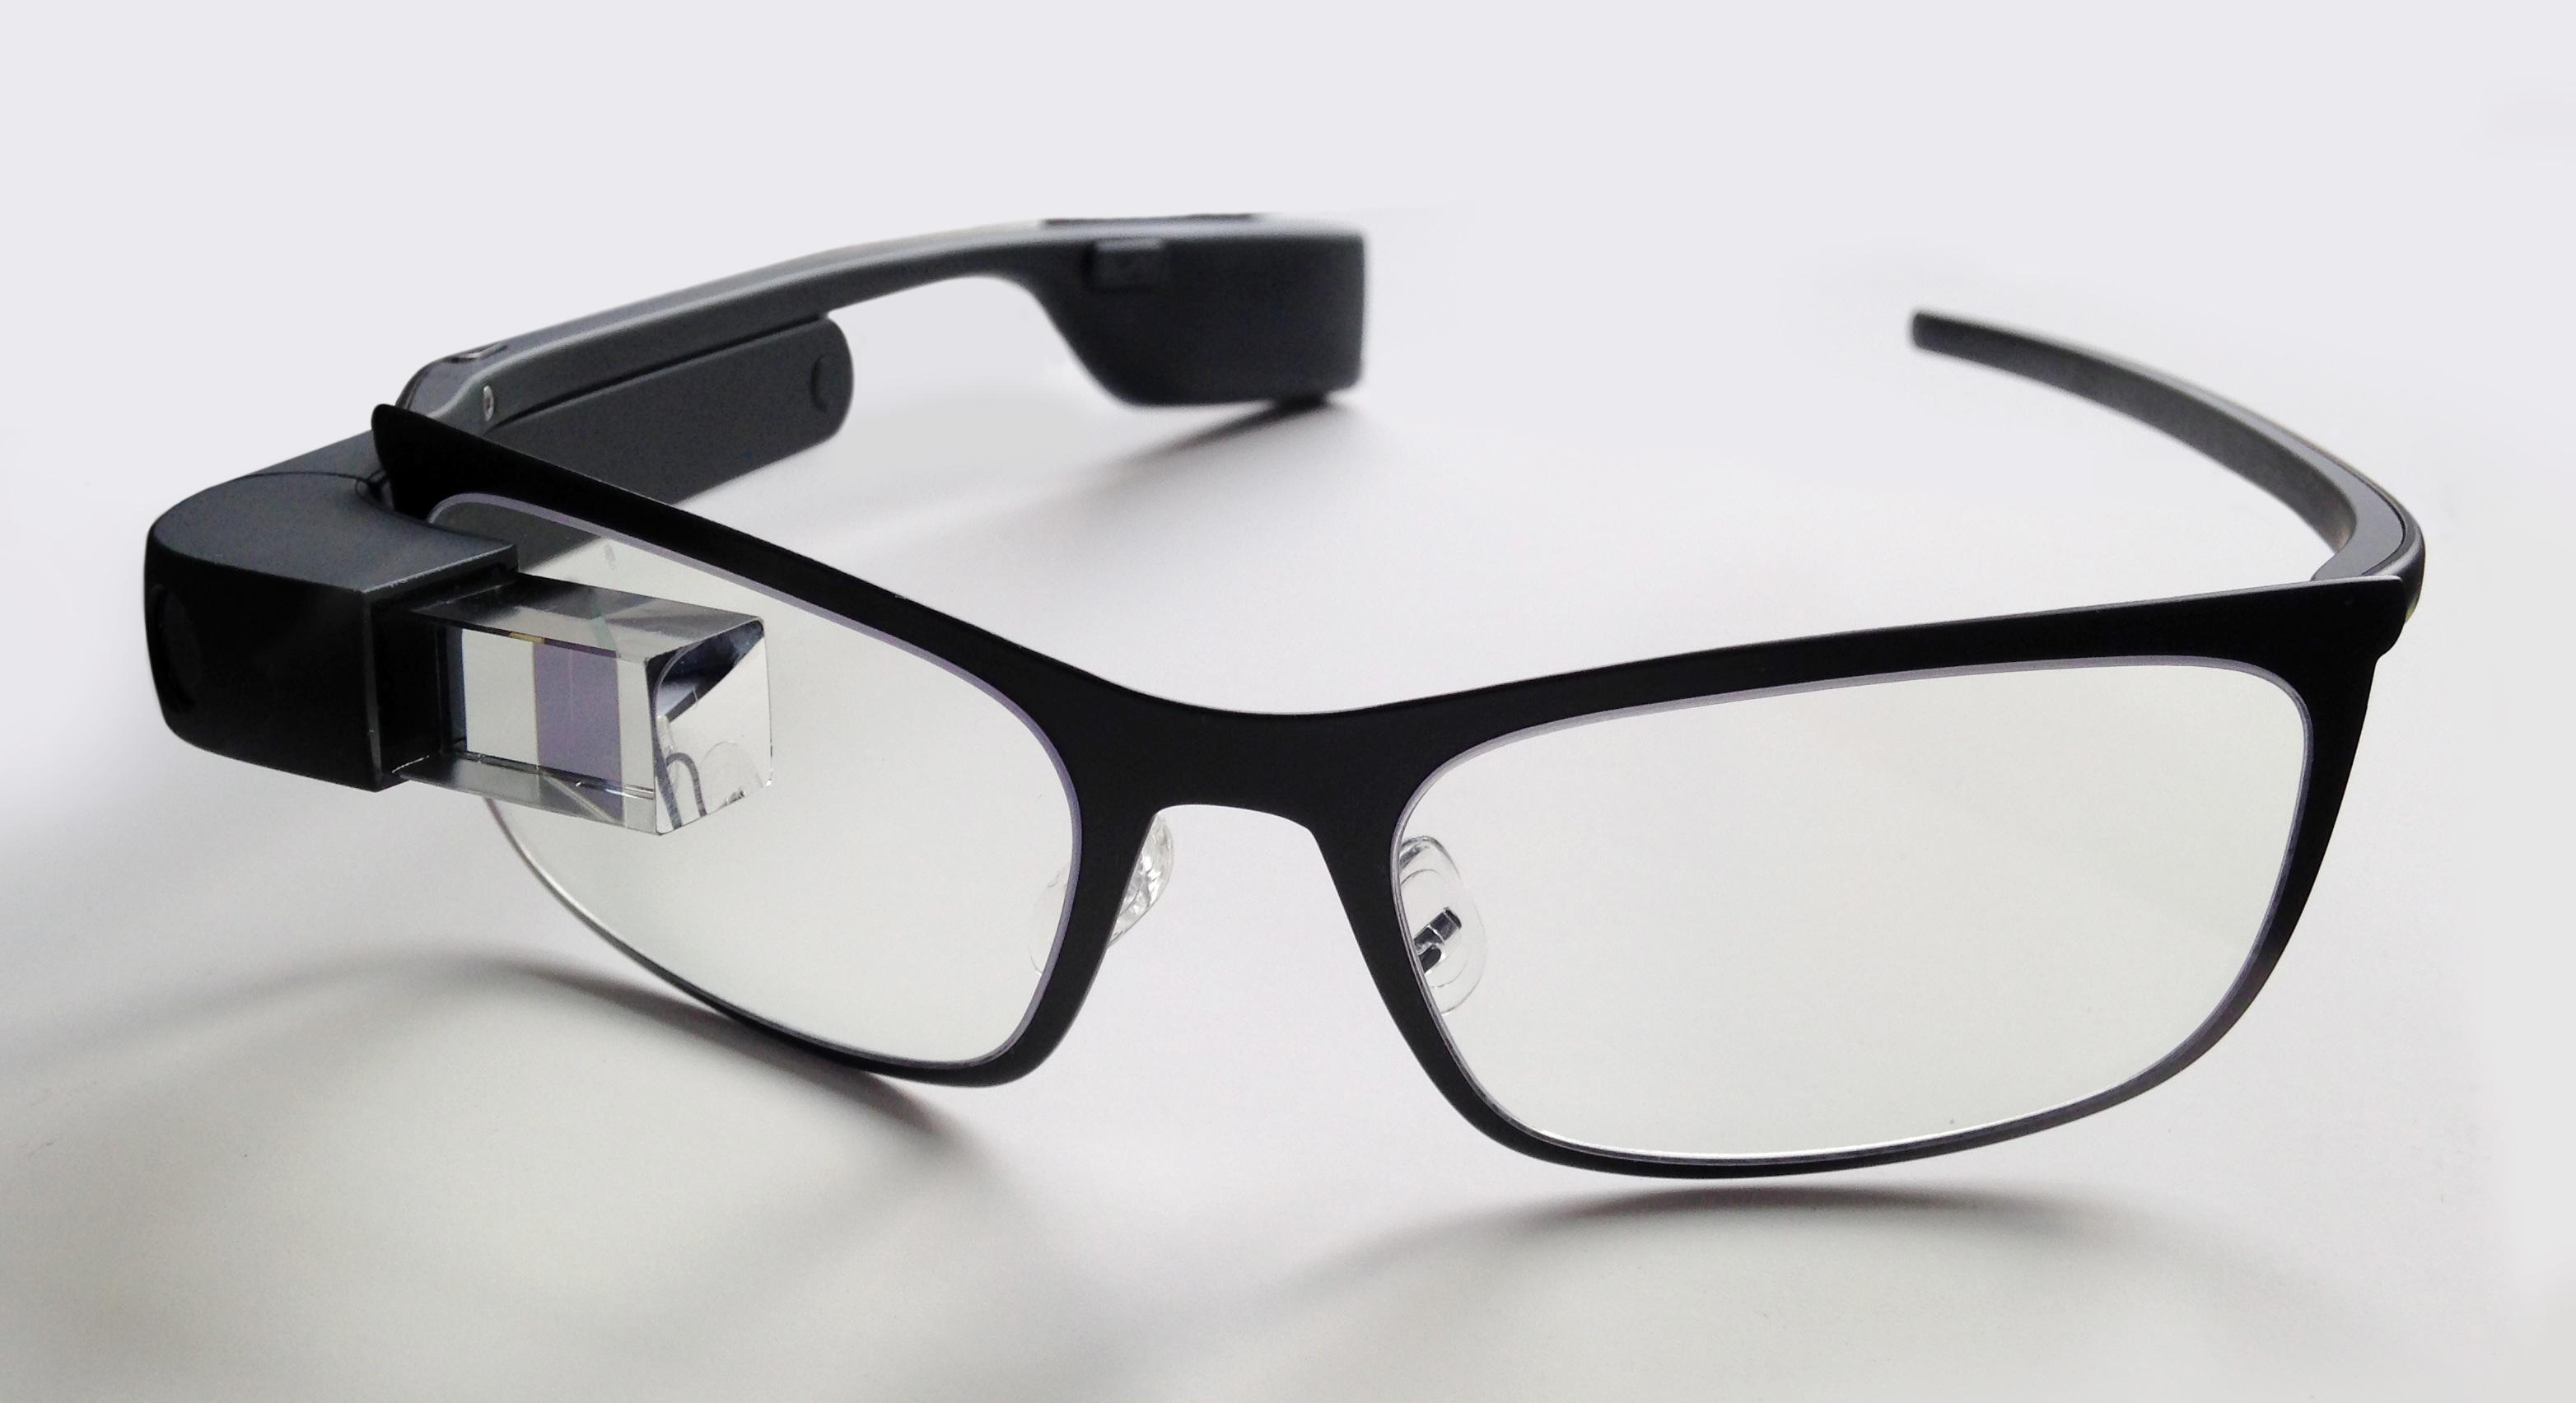 Google Glasses - initiation à la réalité virtuelle